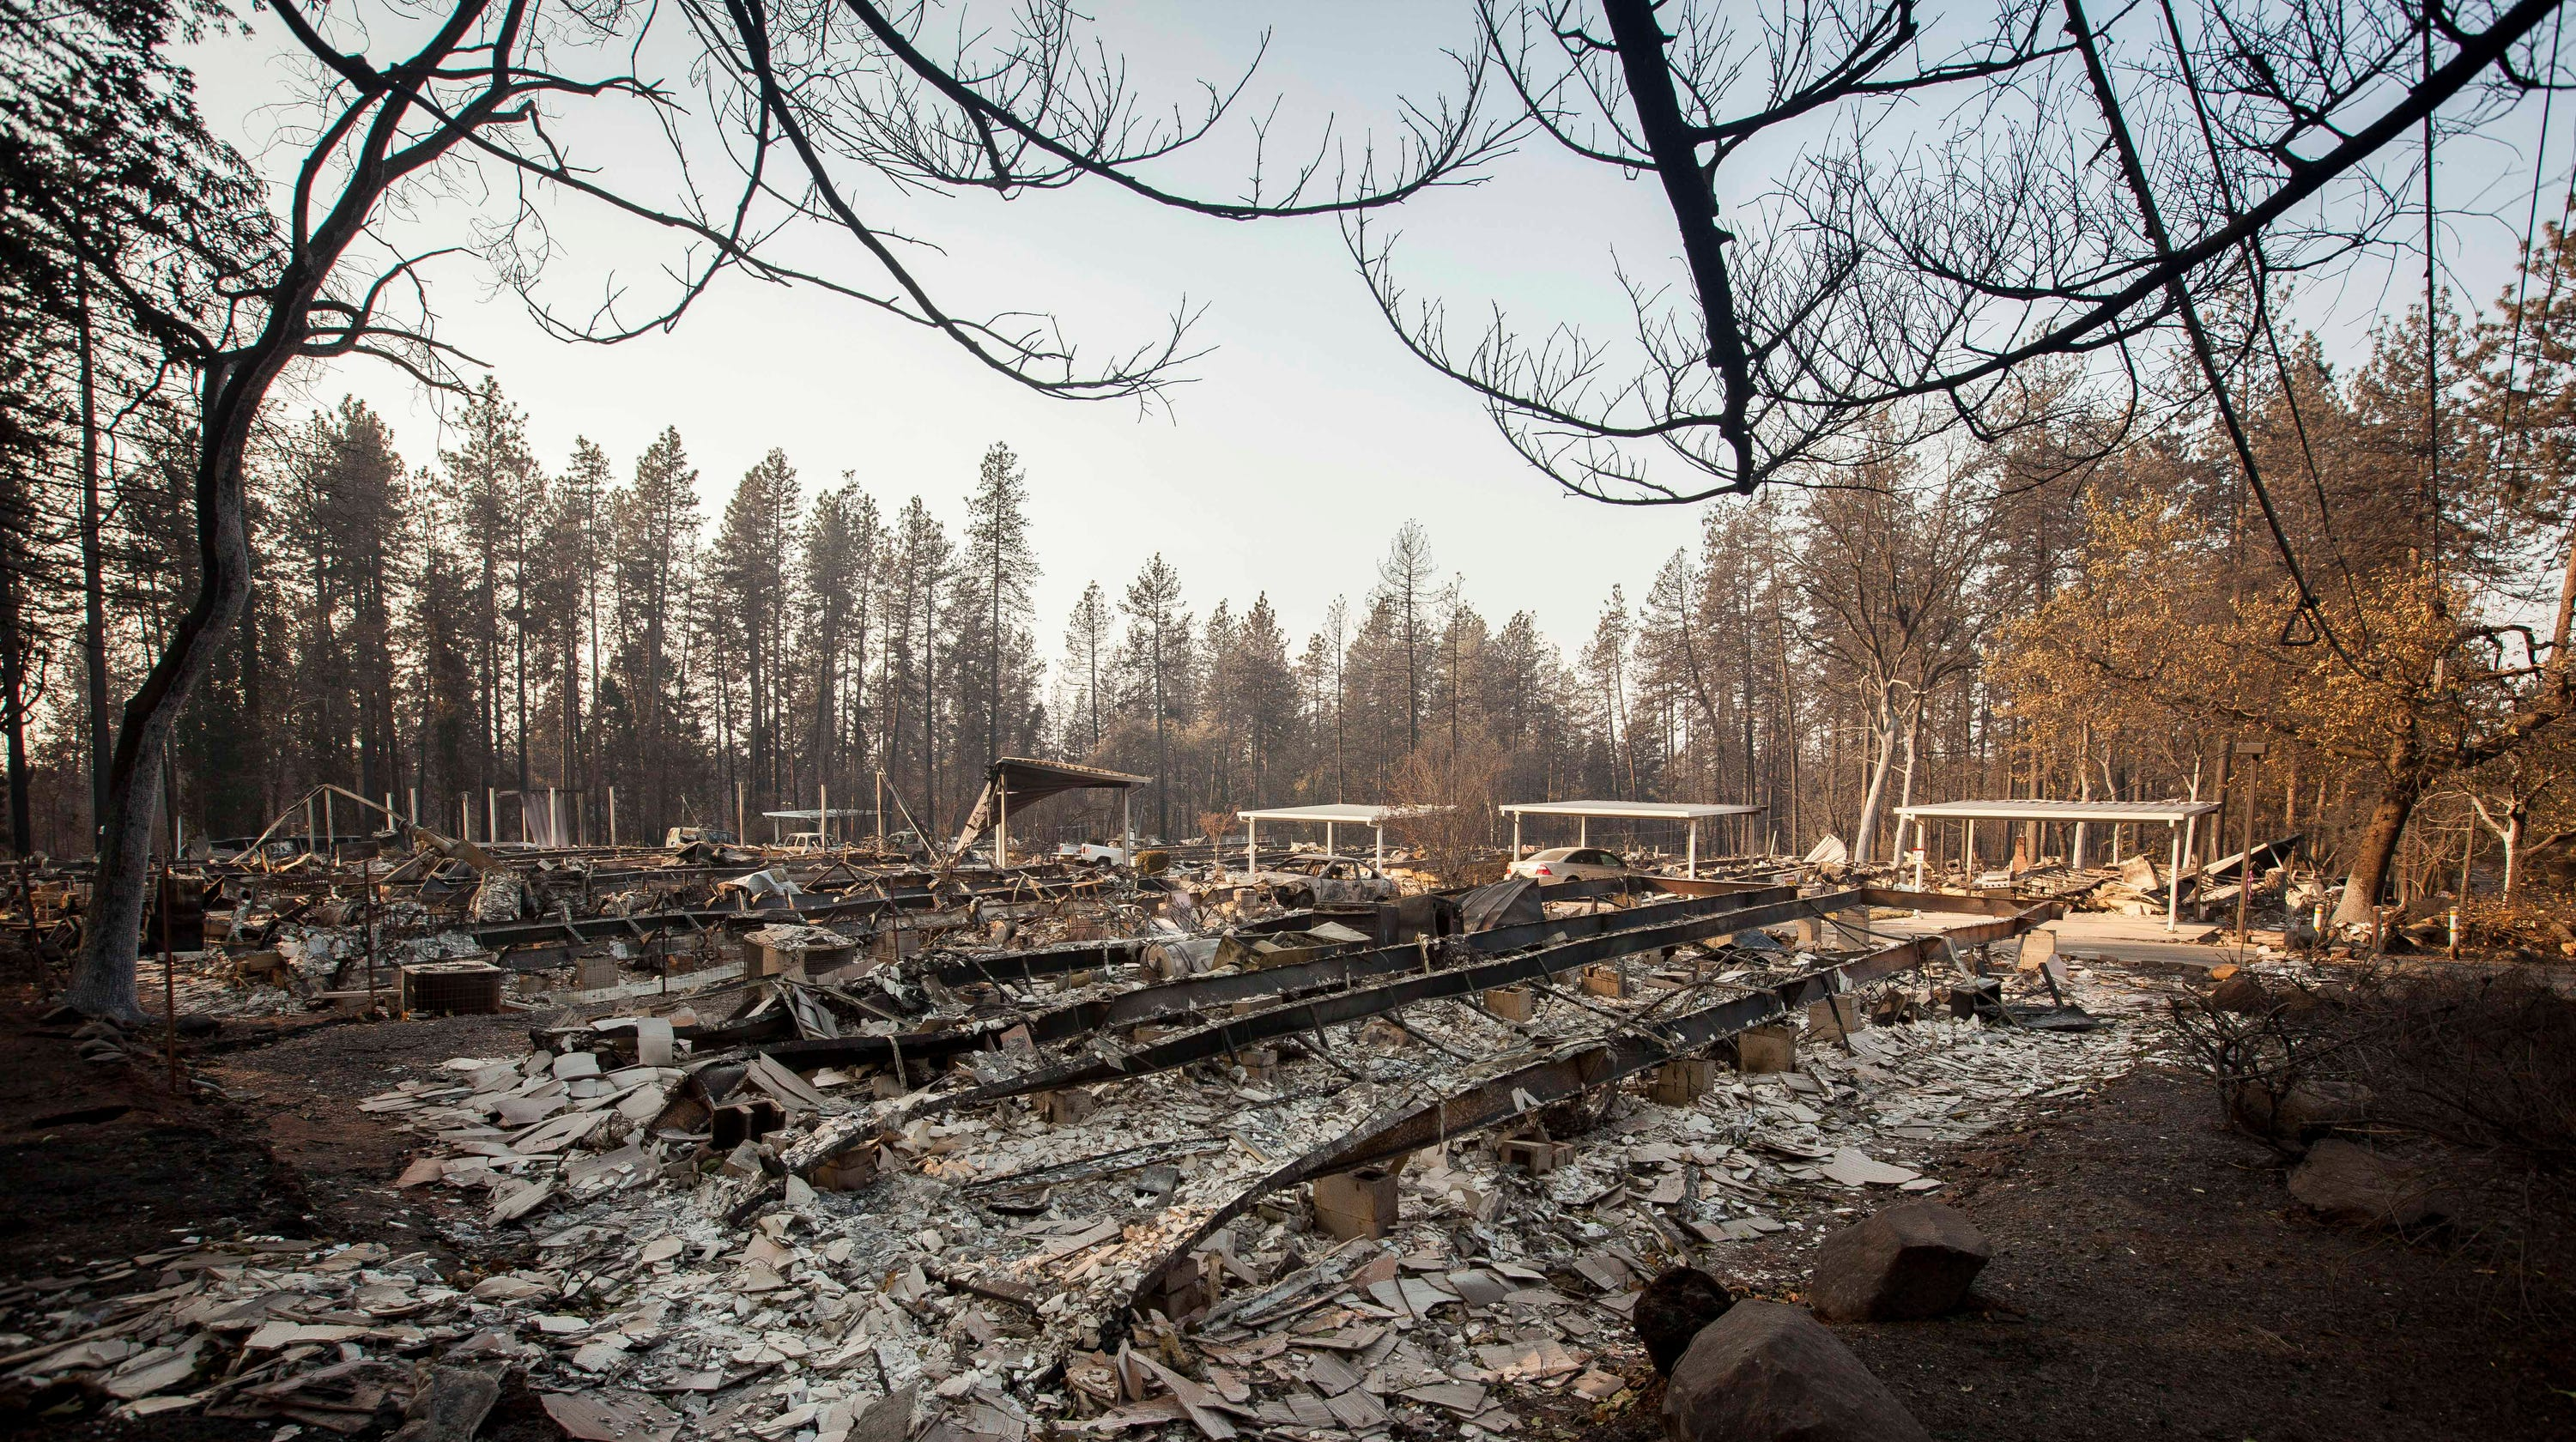 Trump impeachment inquiry, Camp Fire one year later, Black Friday preview: 5 things to know Friday